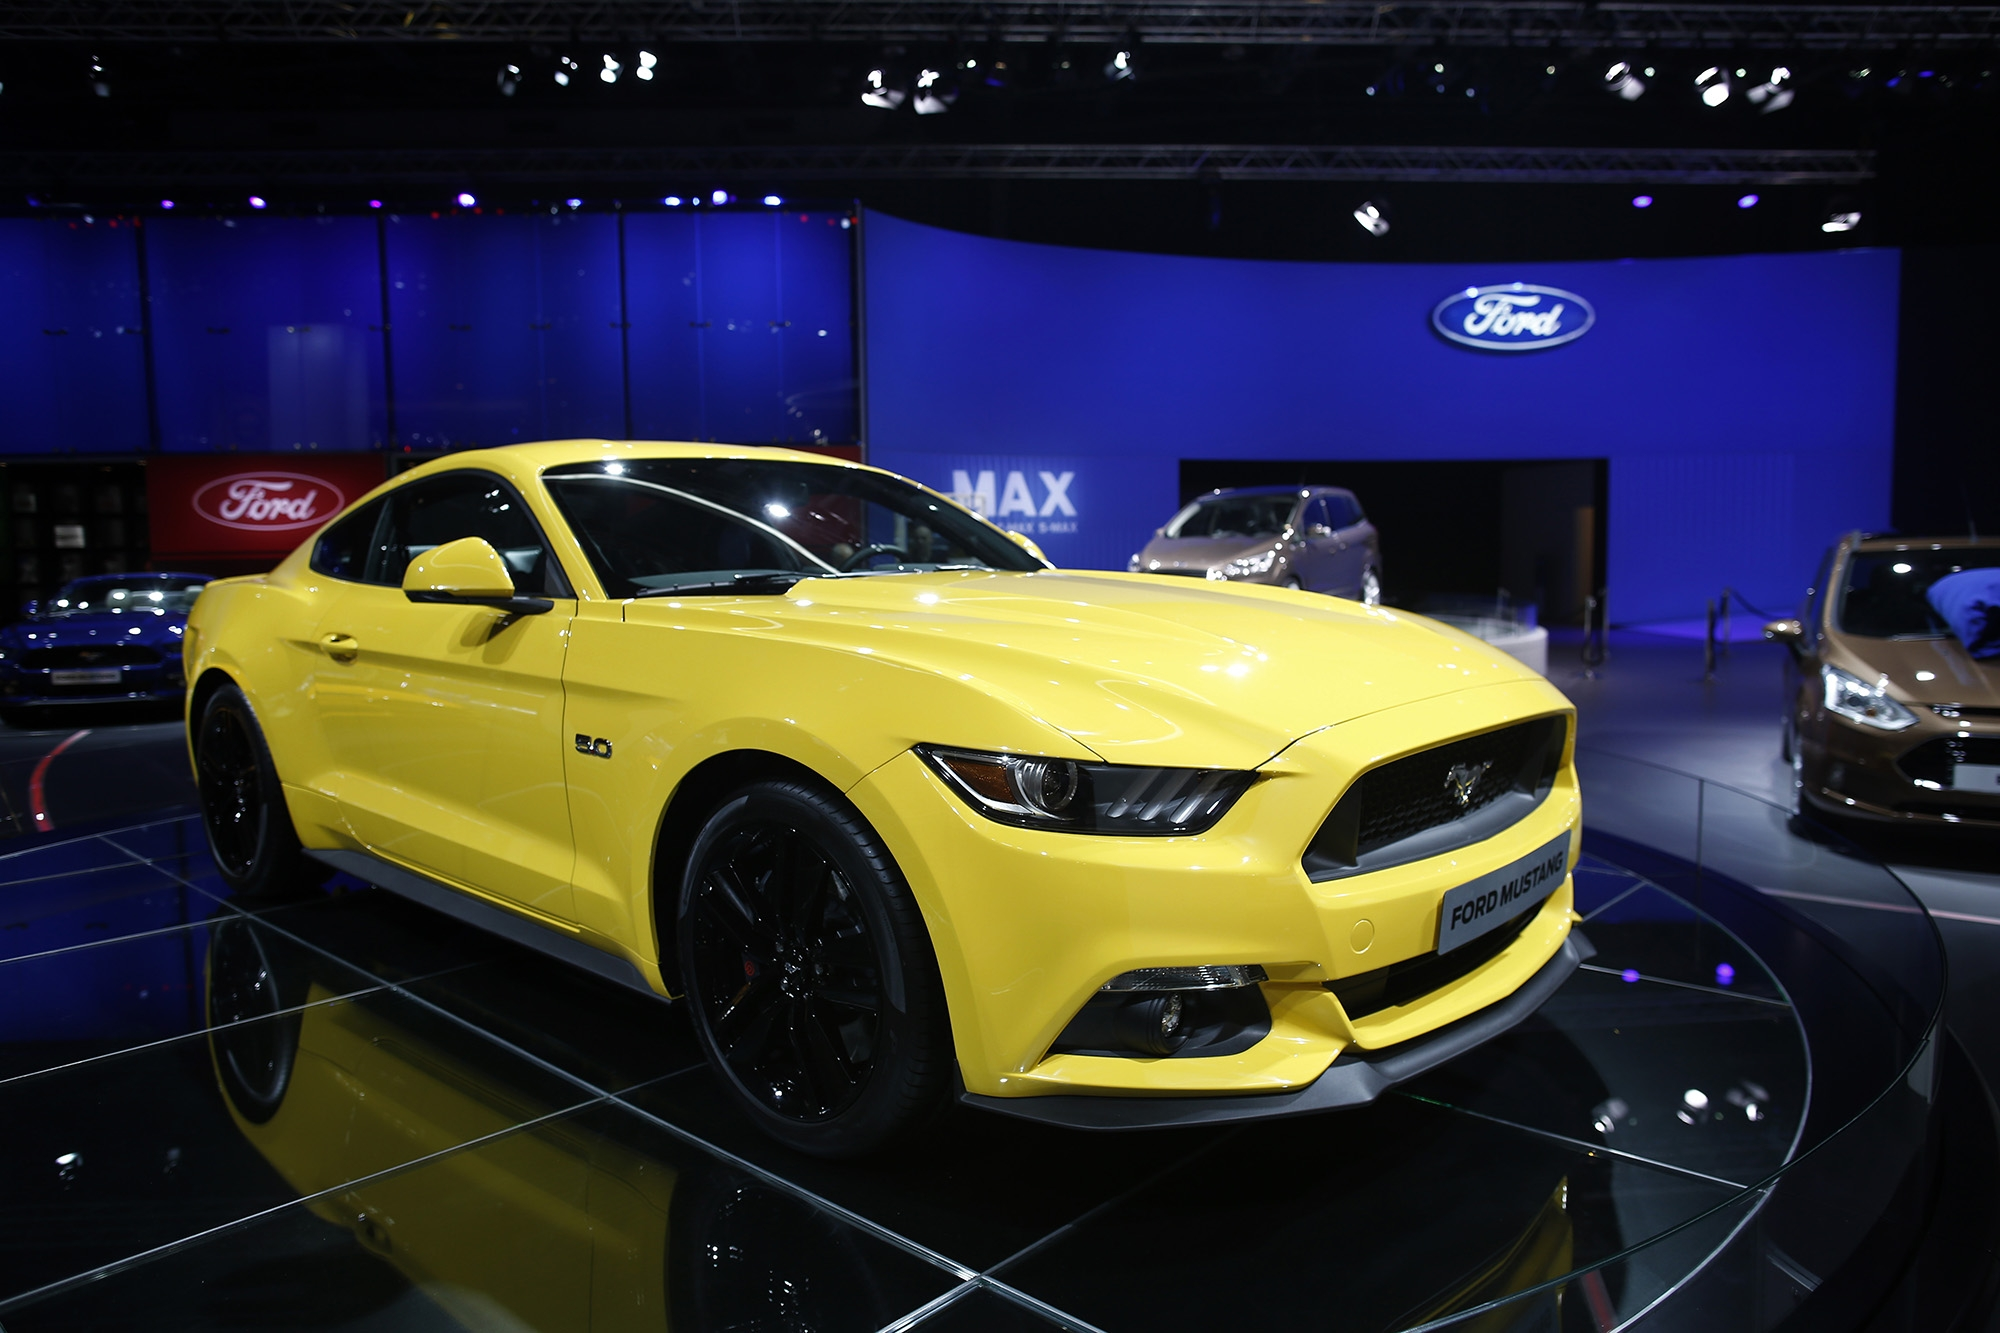 The engine growl in some of America's best-selling cars and trucks, like the Ford Mustang, is actually a finely-tuned bit of lip-syncing, boosted through special pipes.